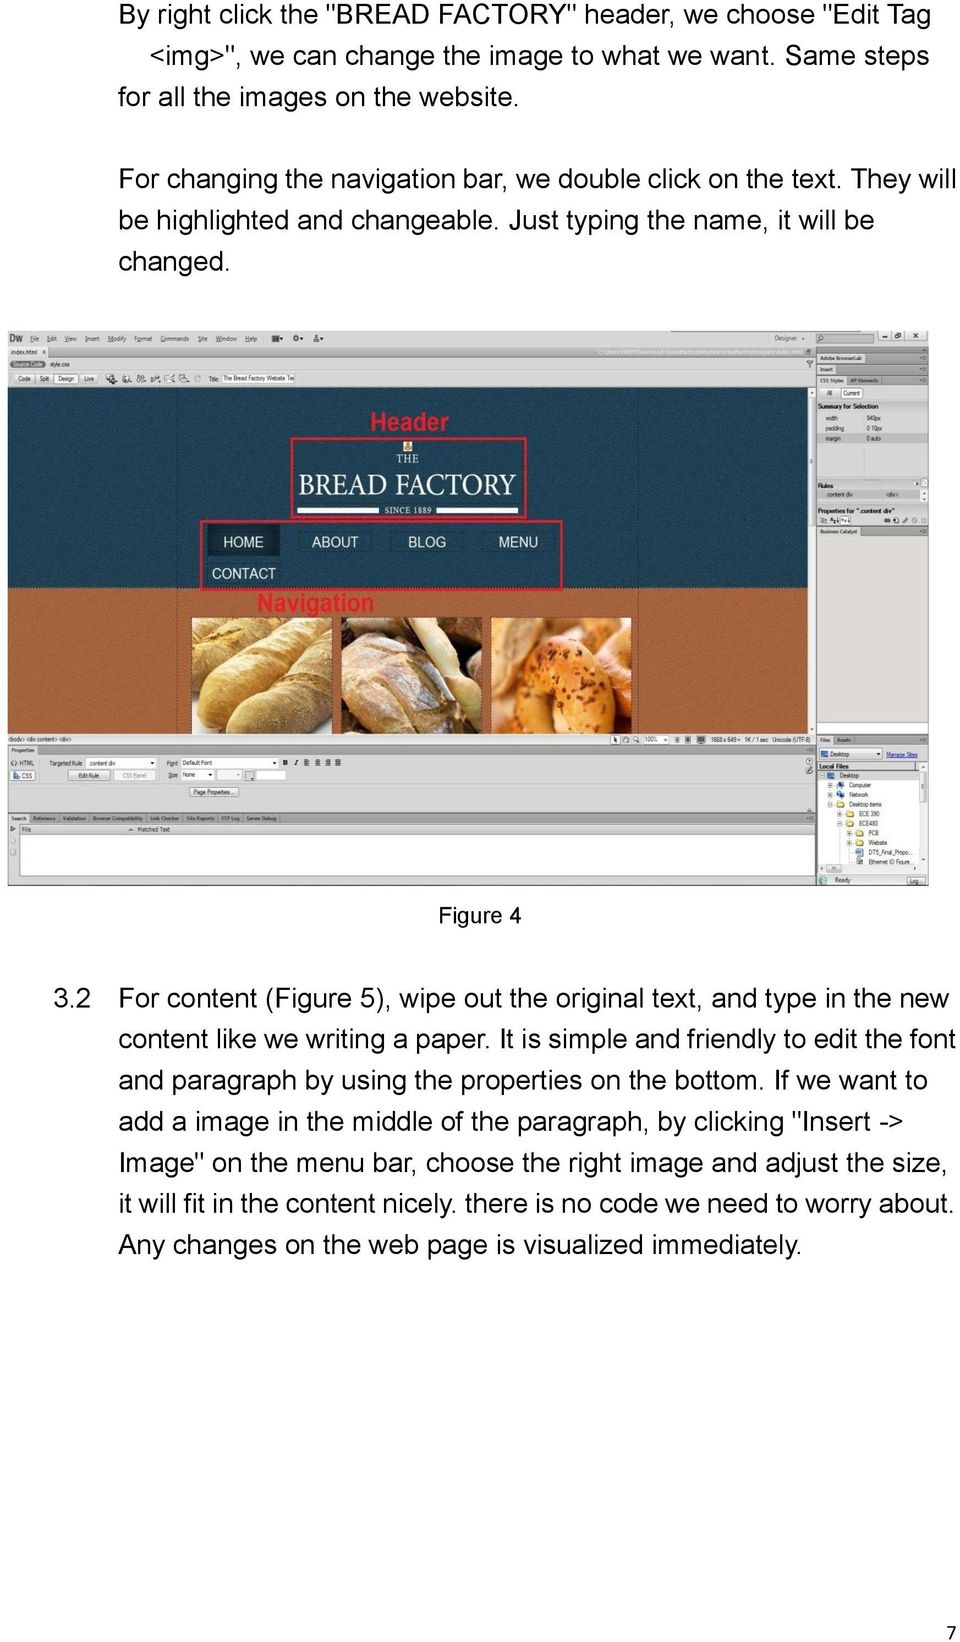 2 For content (Figure 5), wipe out the original text, and type in the new content like we writing a paper.